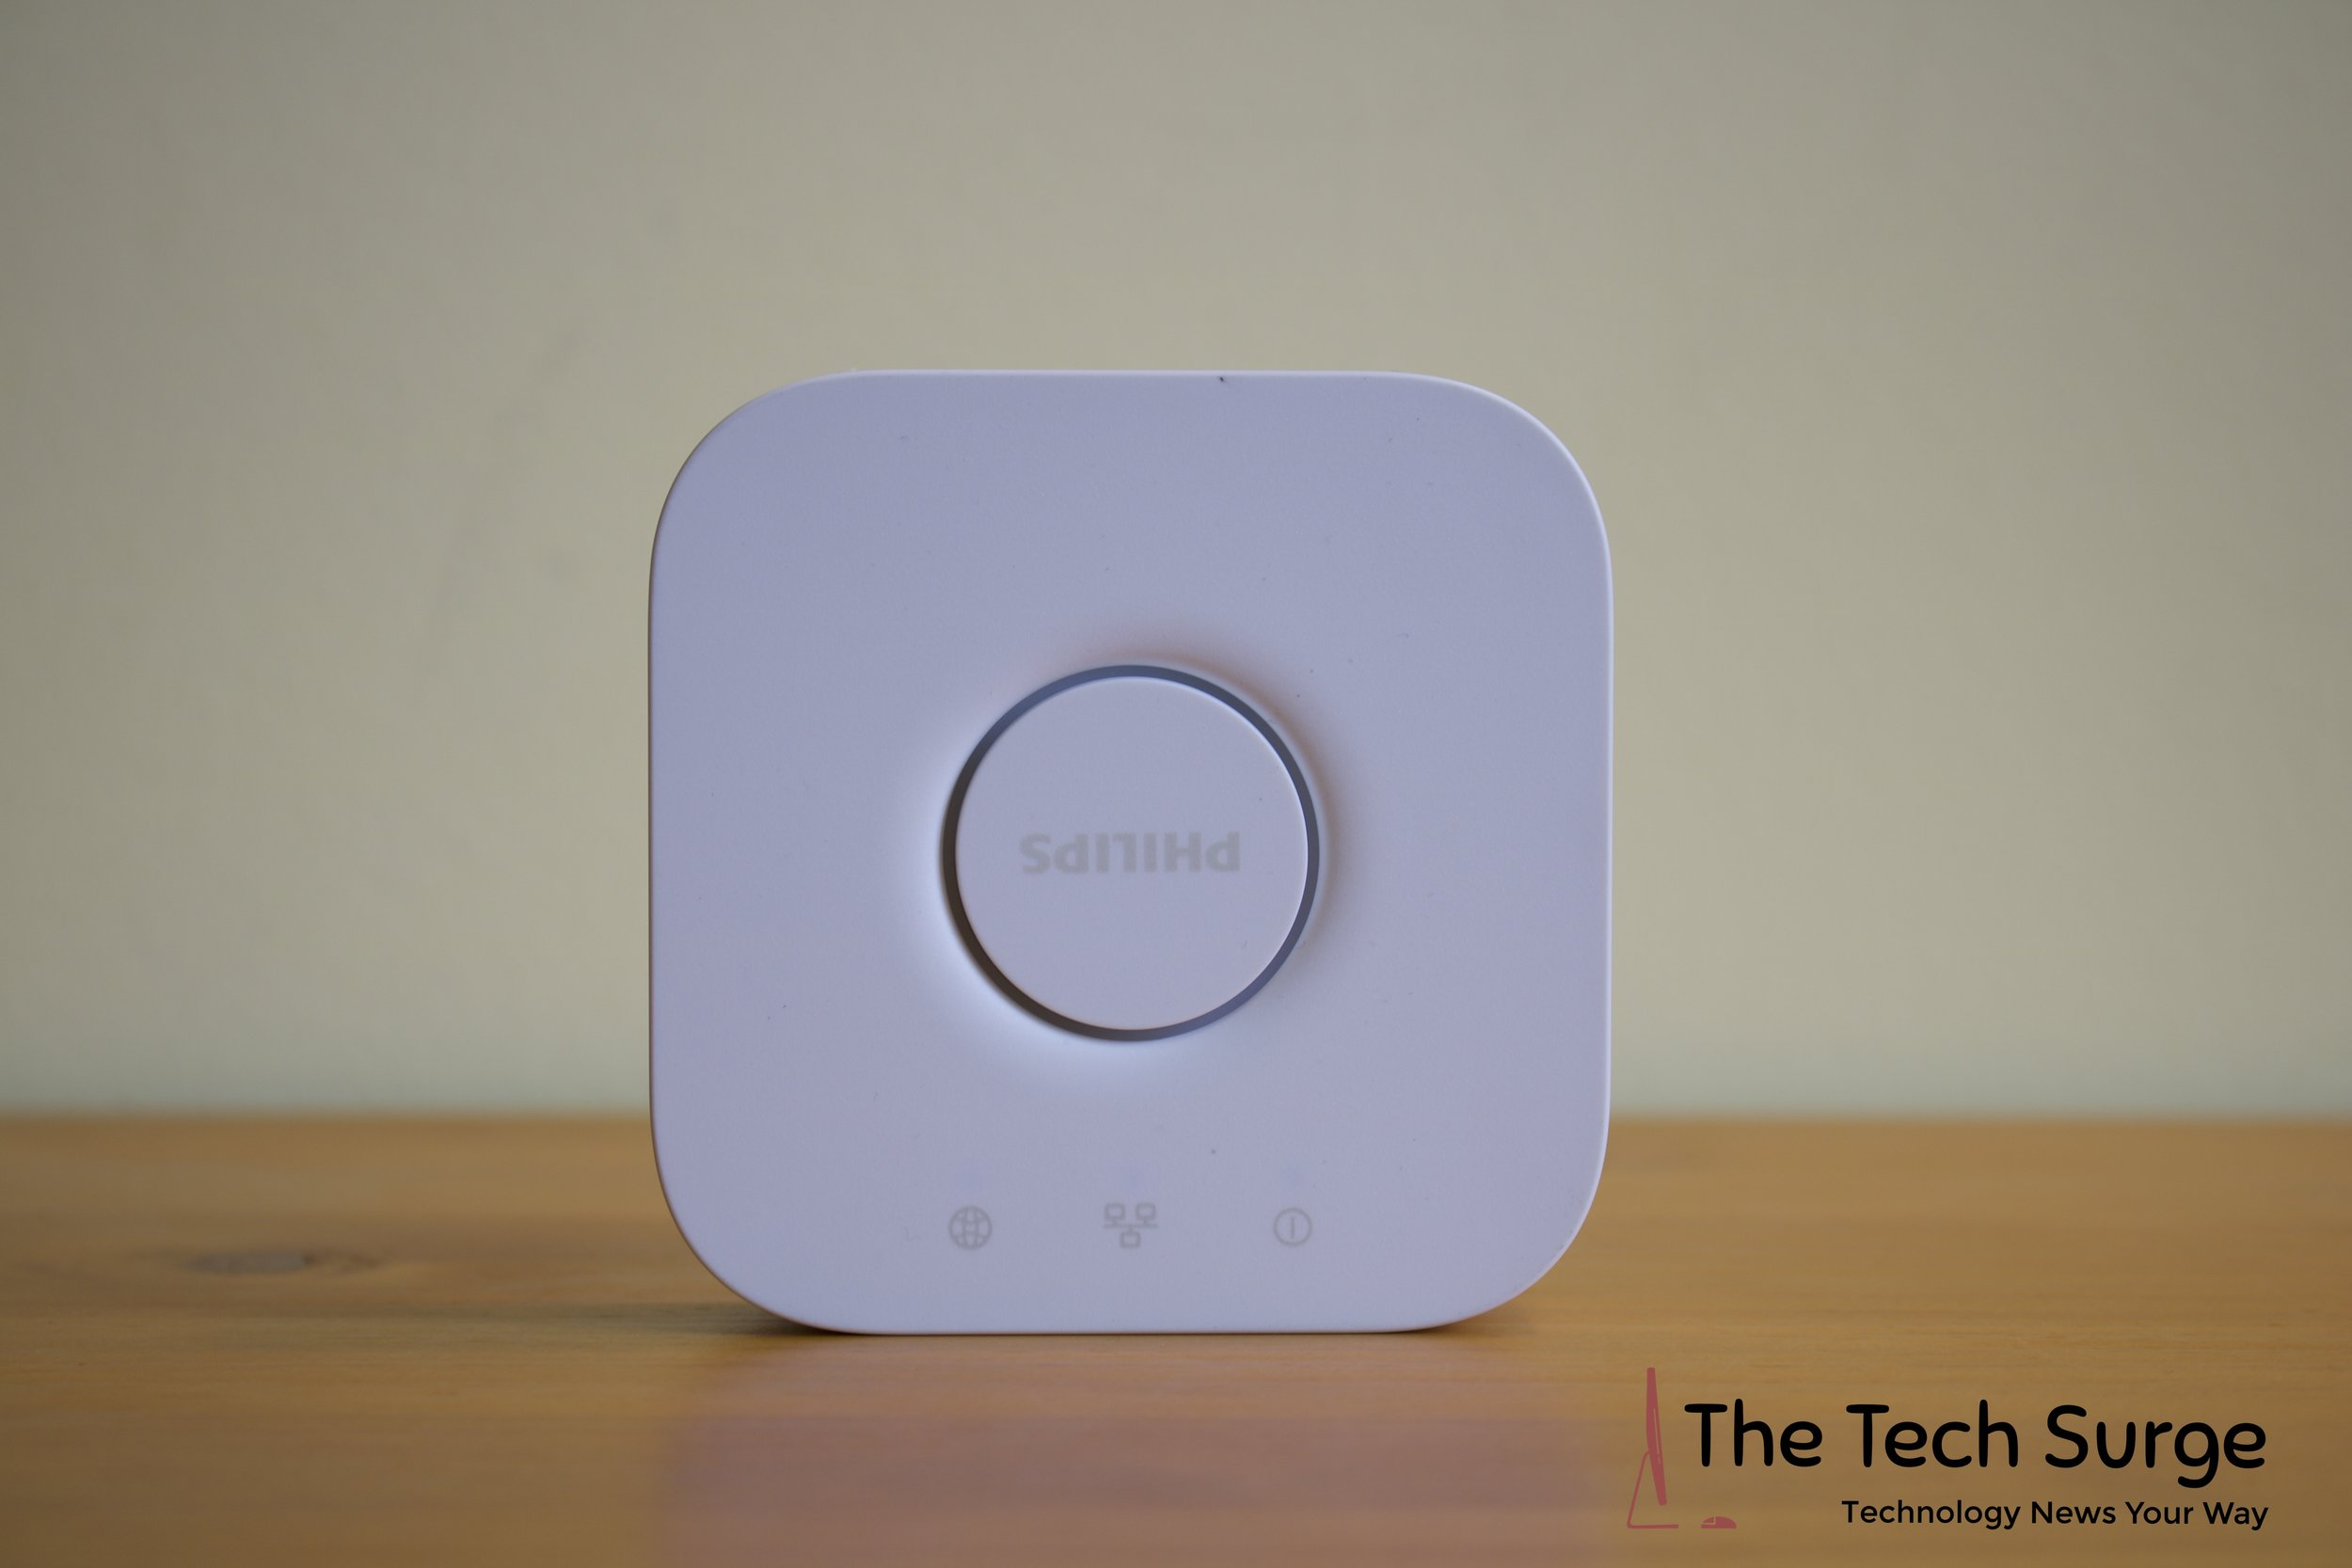 A closer look at the proprietary Philips Hue Bridge that connects your new smart lights to your home Wi-Fi network for easy control.